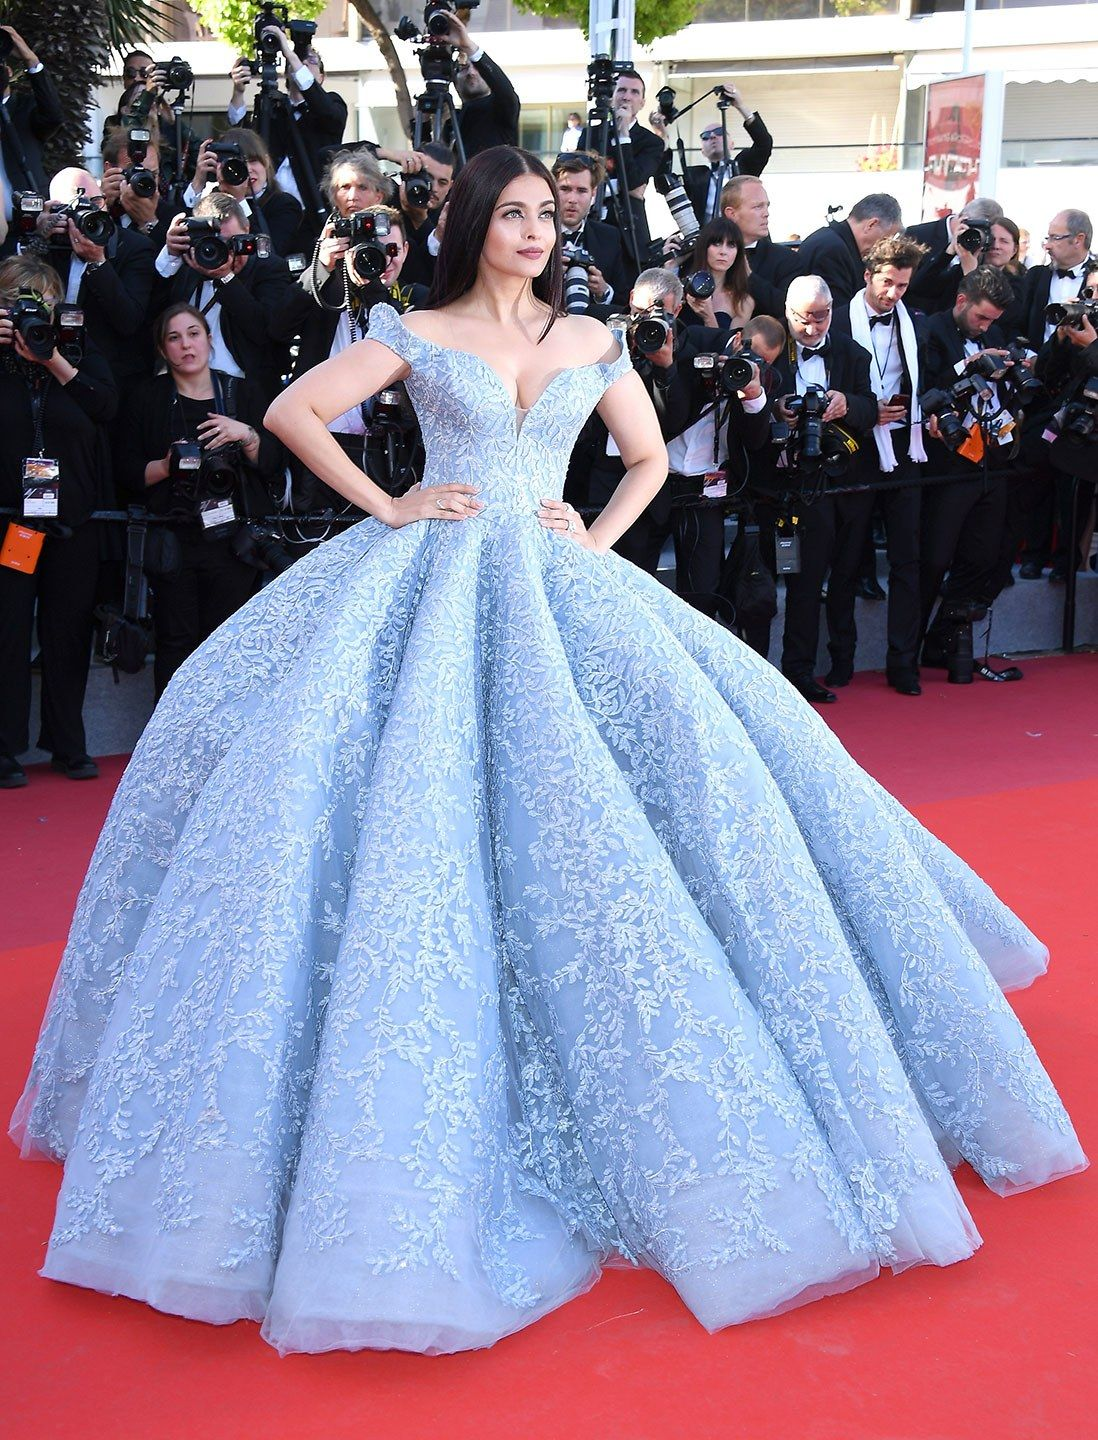 The 2017 Cannes Red Carpet\'s Best-Dressed Celebrities | Prom ...